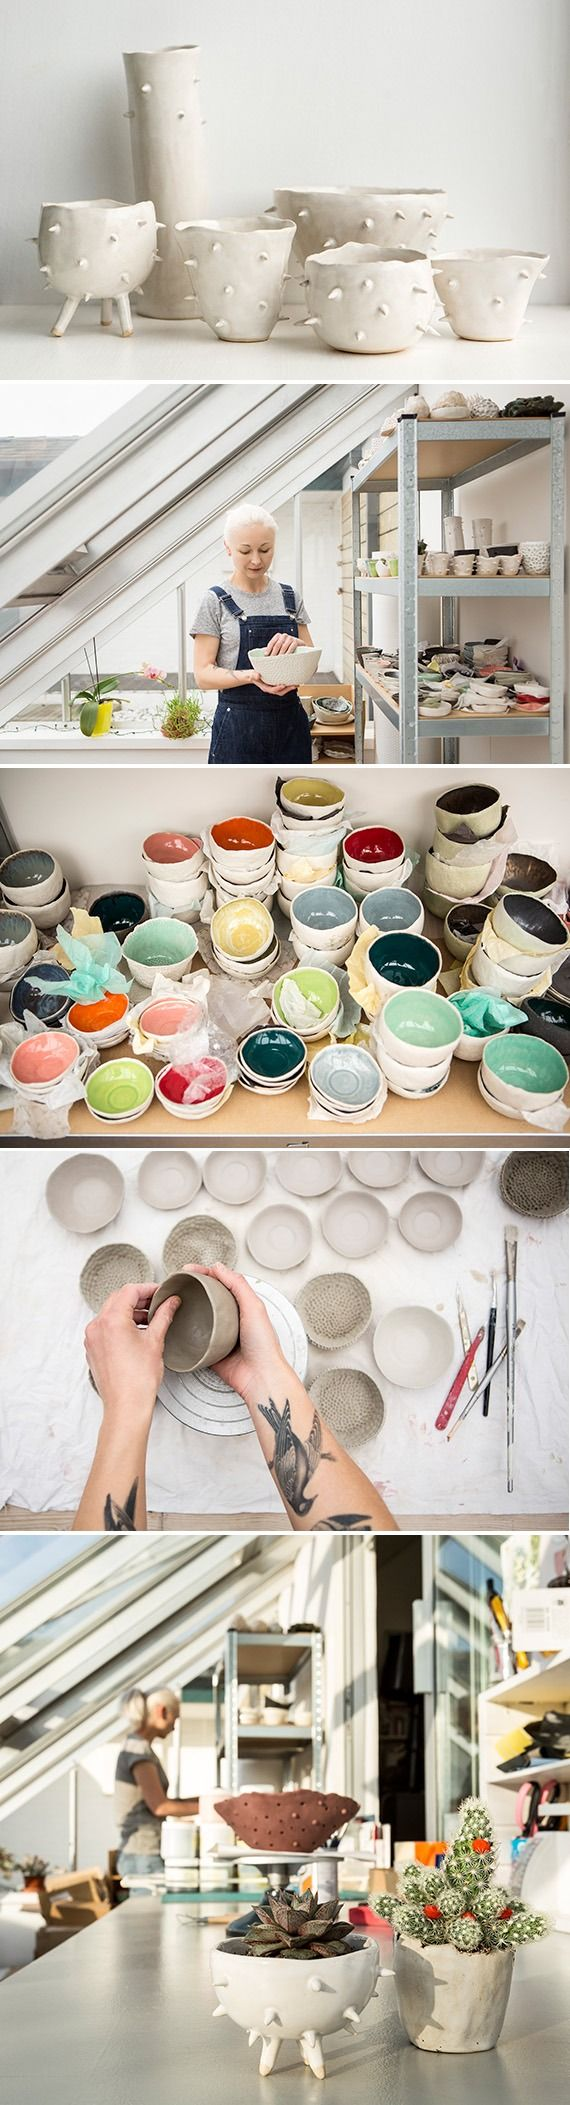 """Absolutely go for what you love and believe in. I think if you love what you are doing it's going to show, and people are more likely to be willing to buy it."" Self-taught ceramicist and jewelry designer Carol Morley found her niche making delightfully irregular treasures by hand in her London live-work flat."